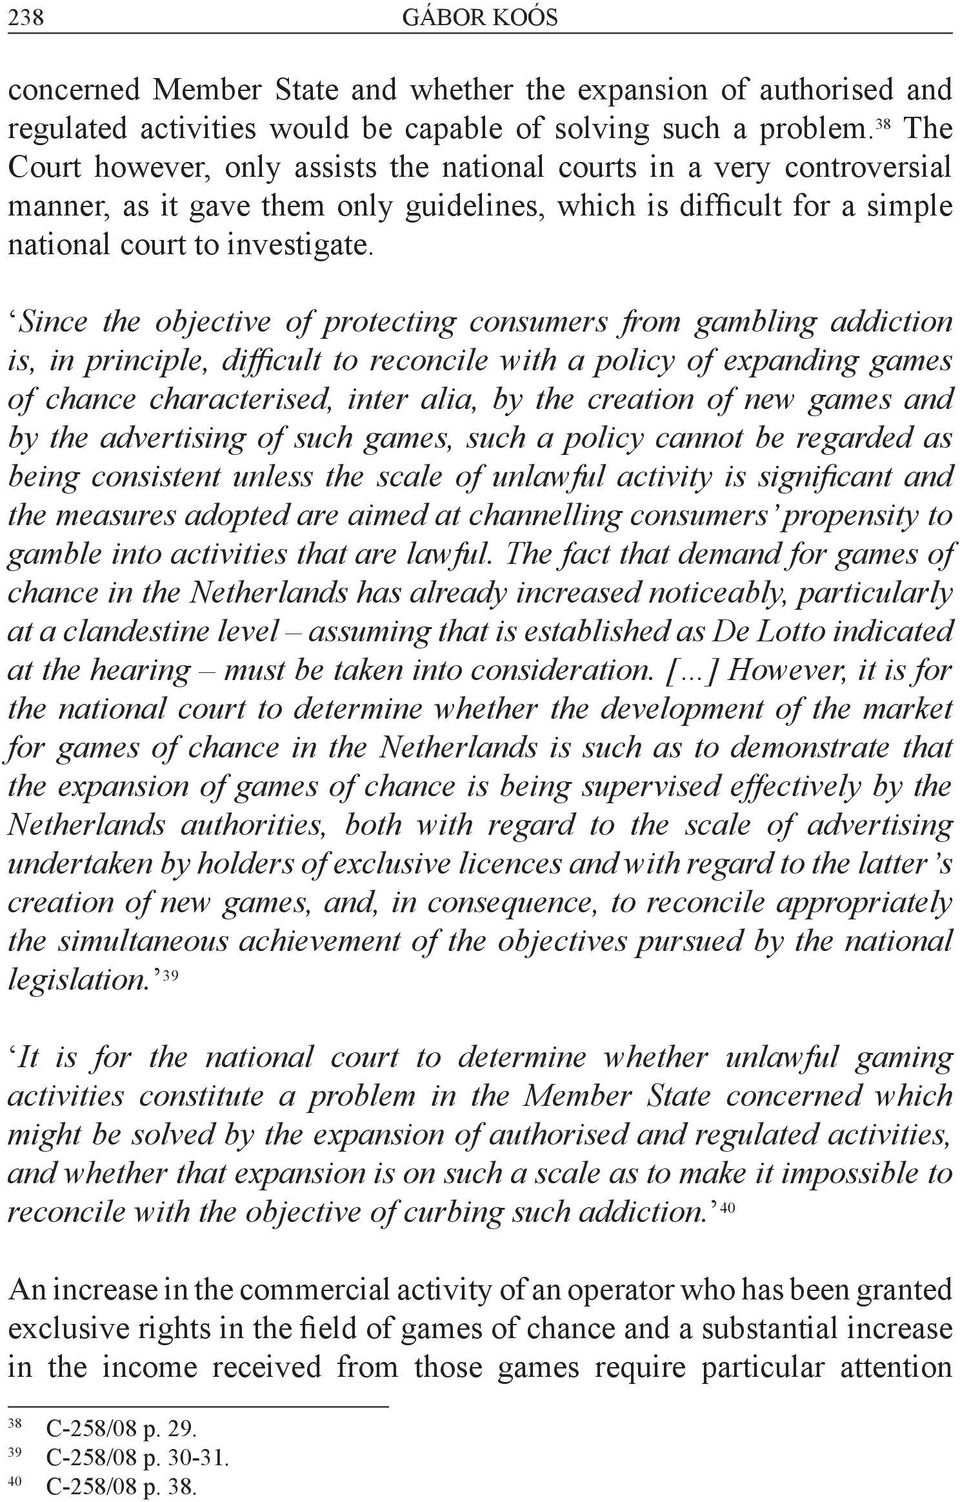 Since the objective of protecting consumers from gambling addiction is, in principle, difficult to reconcile with a policy of expanding games of chance characterised, inter alia, by the creation of